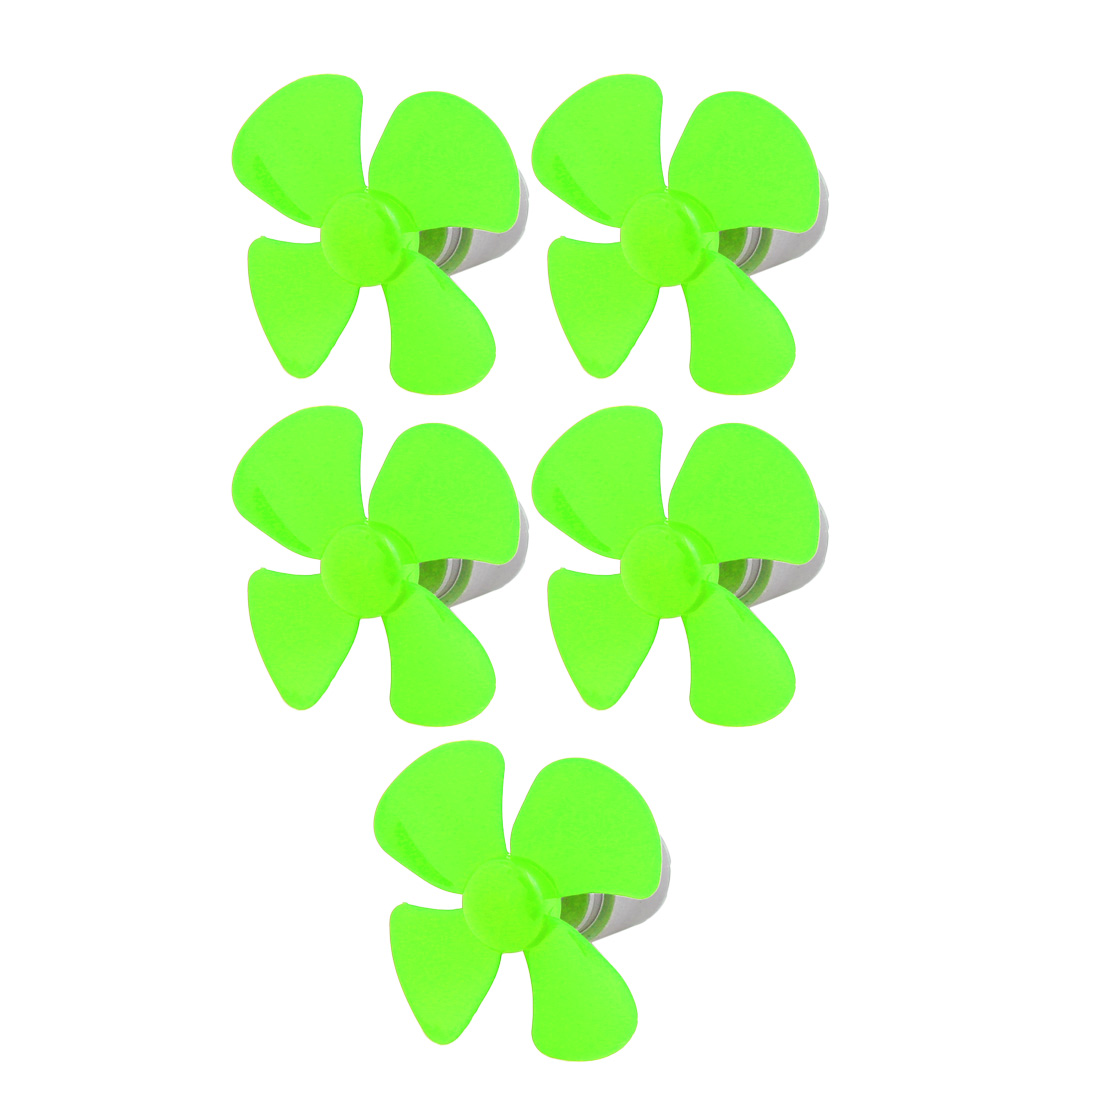 5pcs DC 3V 0.13A 16500RPM Green Strong Force Motor 4 Vanes 56mm Dia Propeller for RC Aircraft